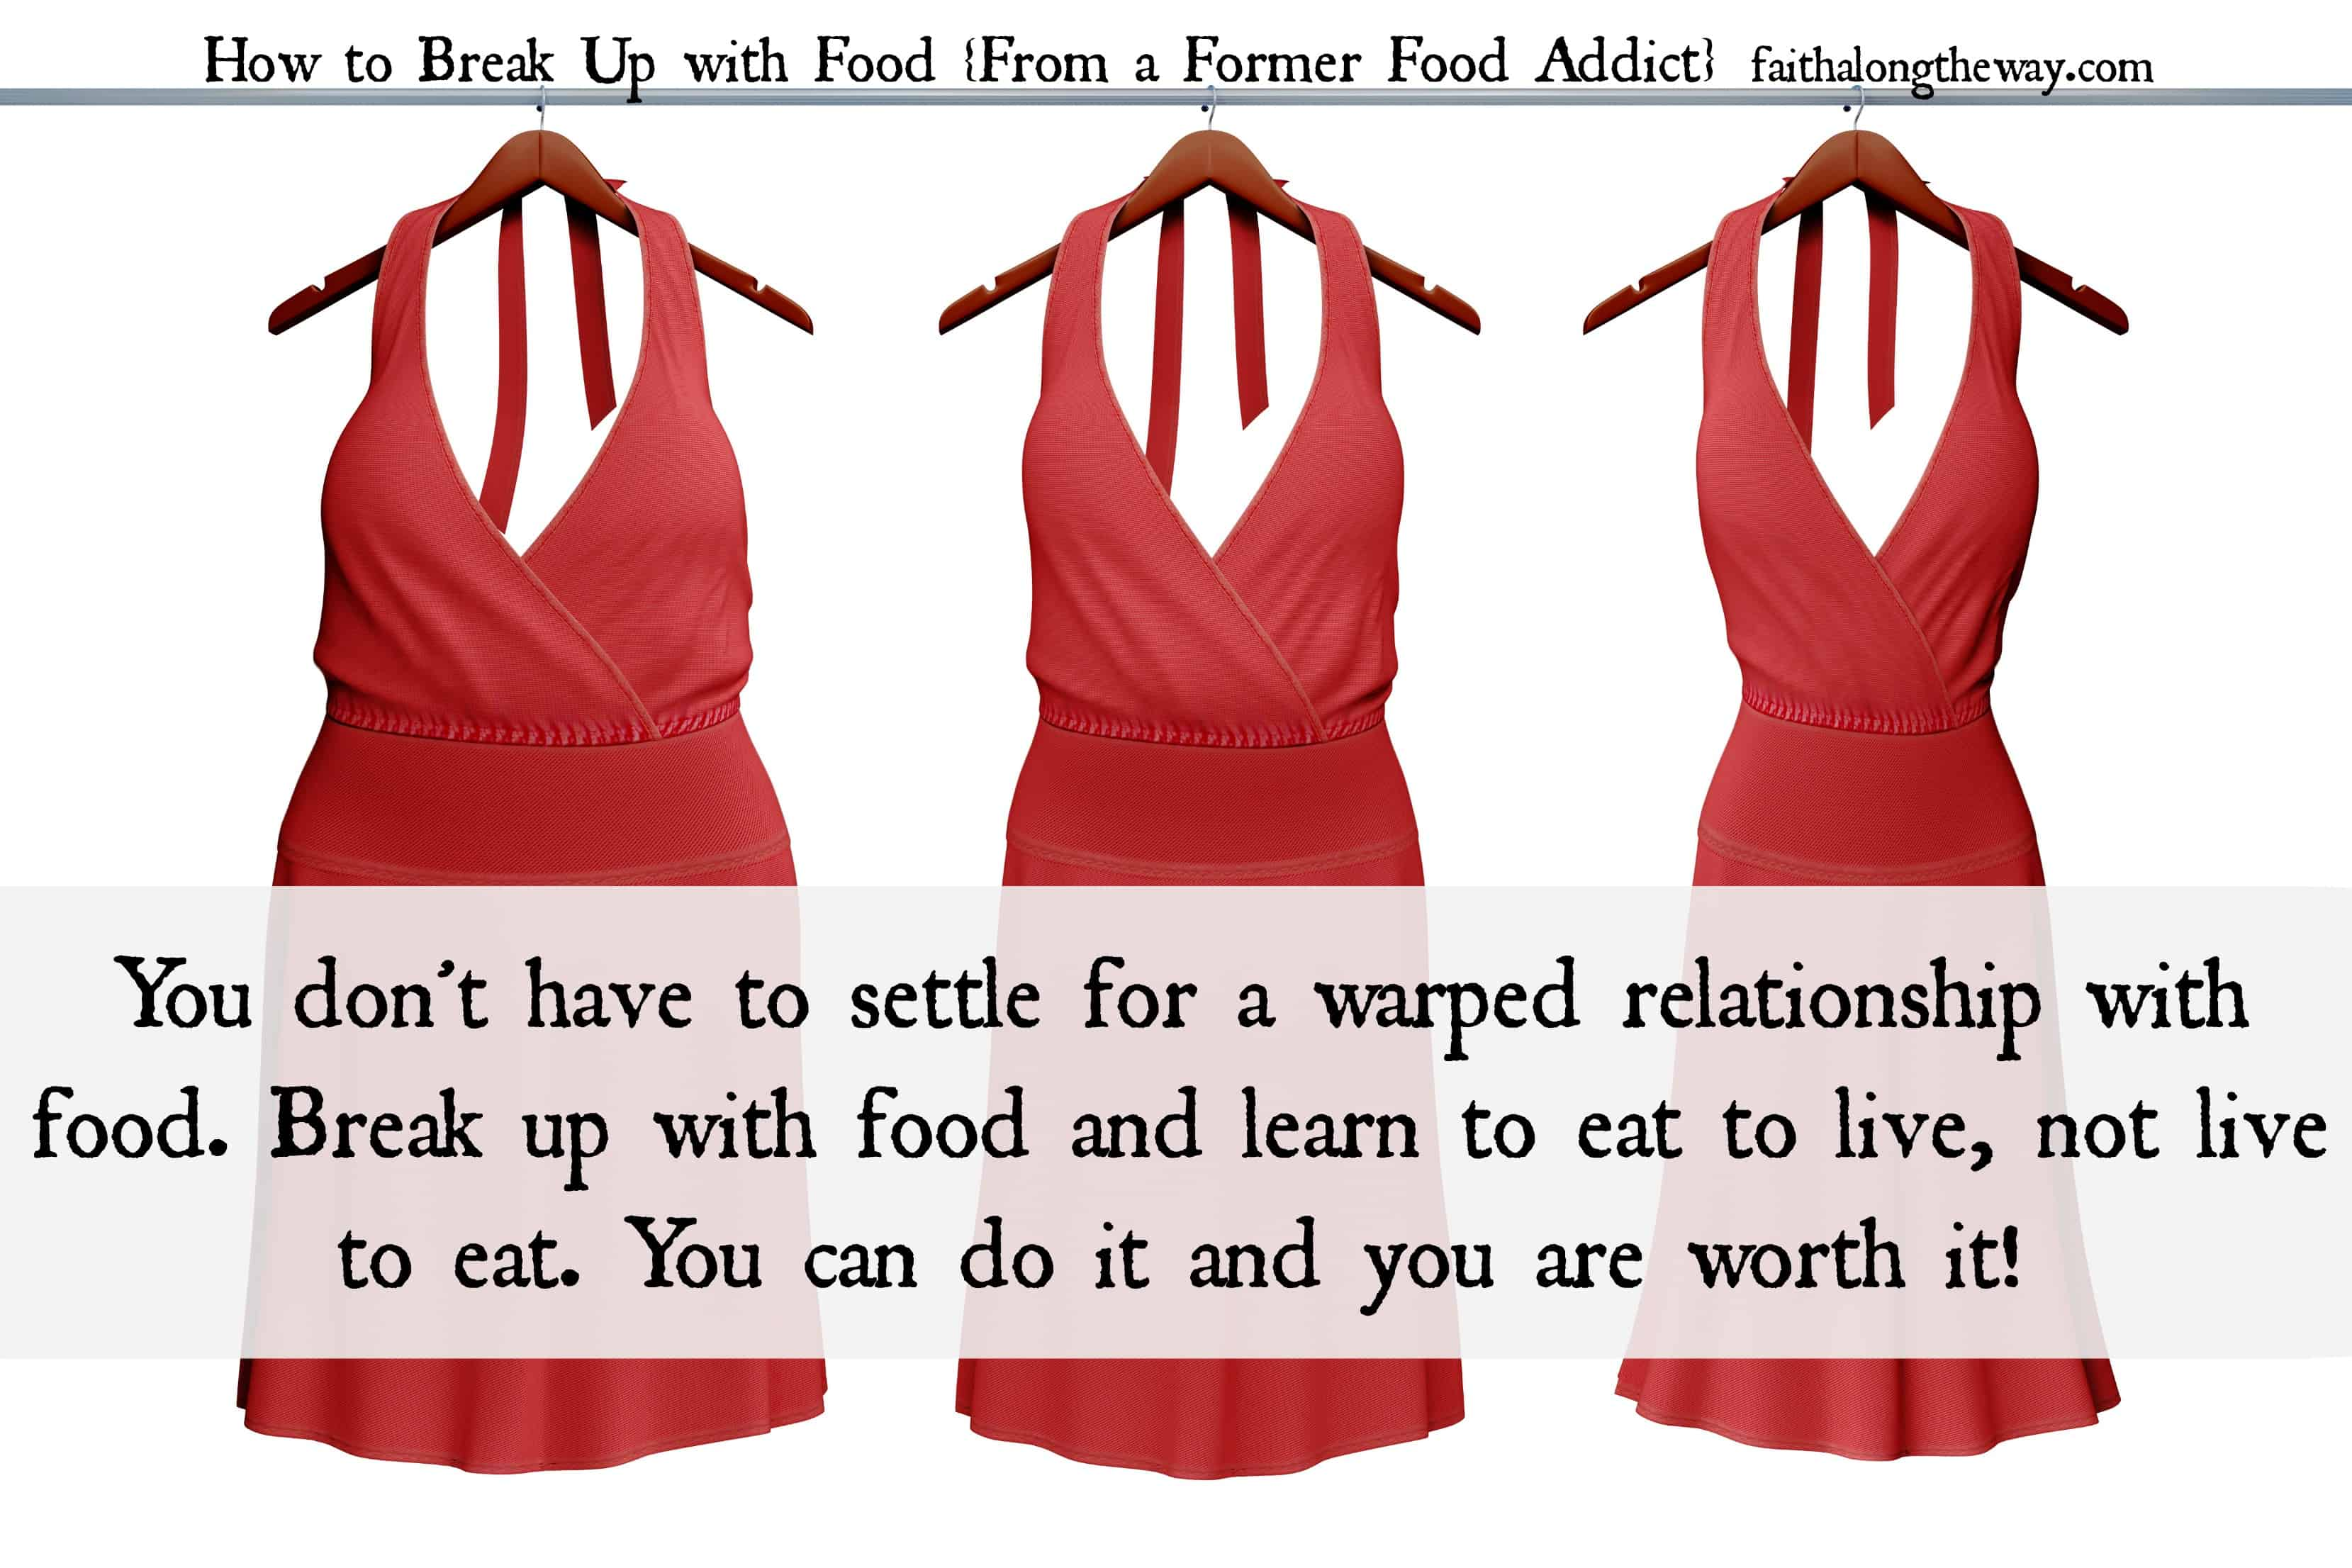 You can break up with food Faith Along the Way